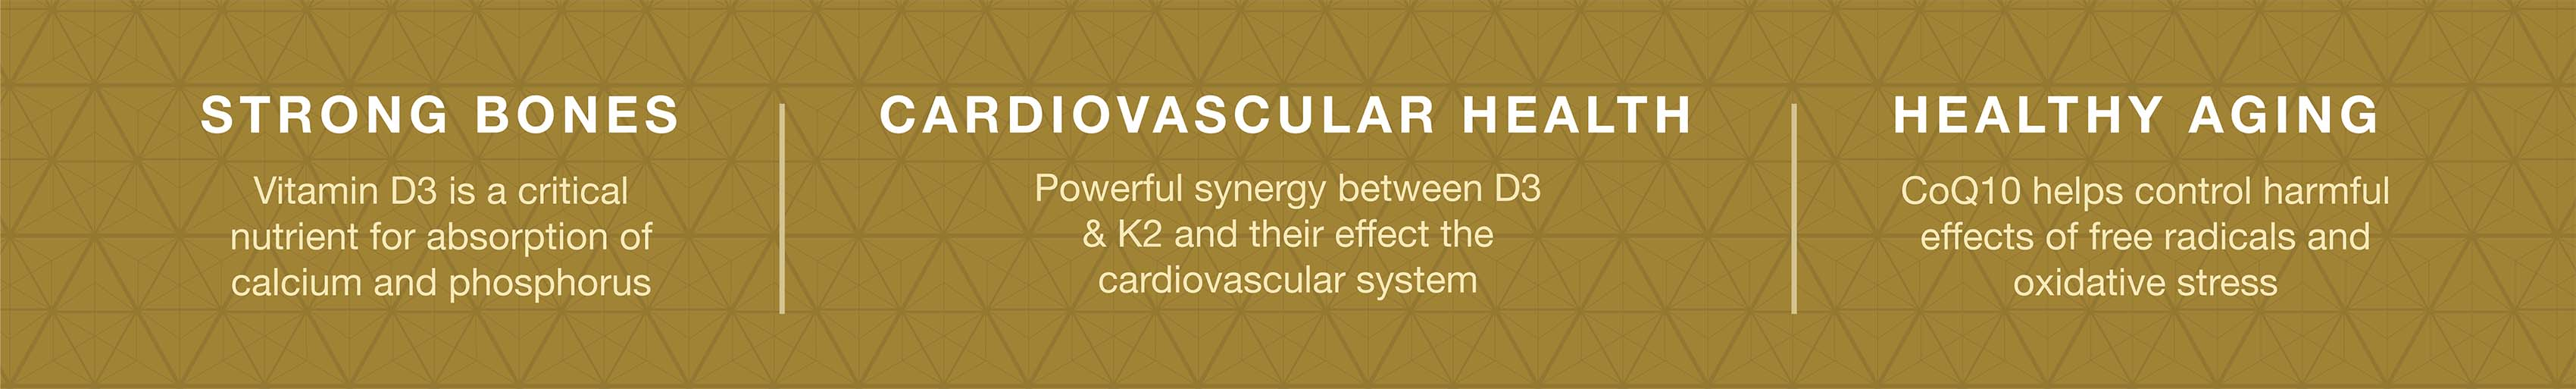 D3-K2 supports strong bones, cardiovascular health, and healthy aging.